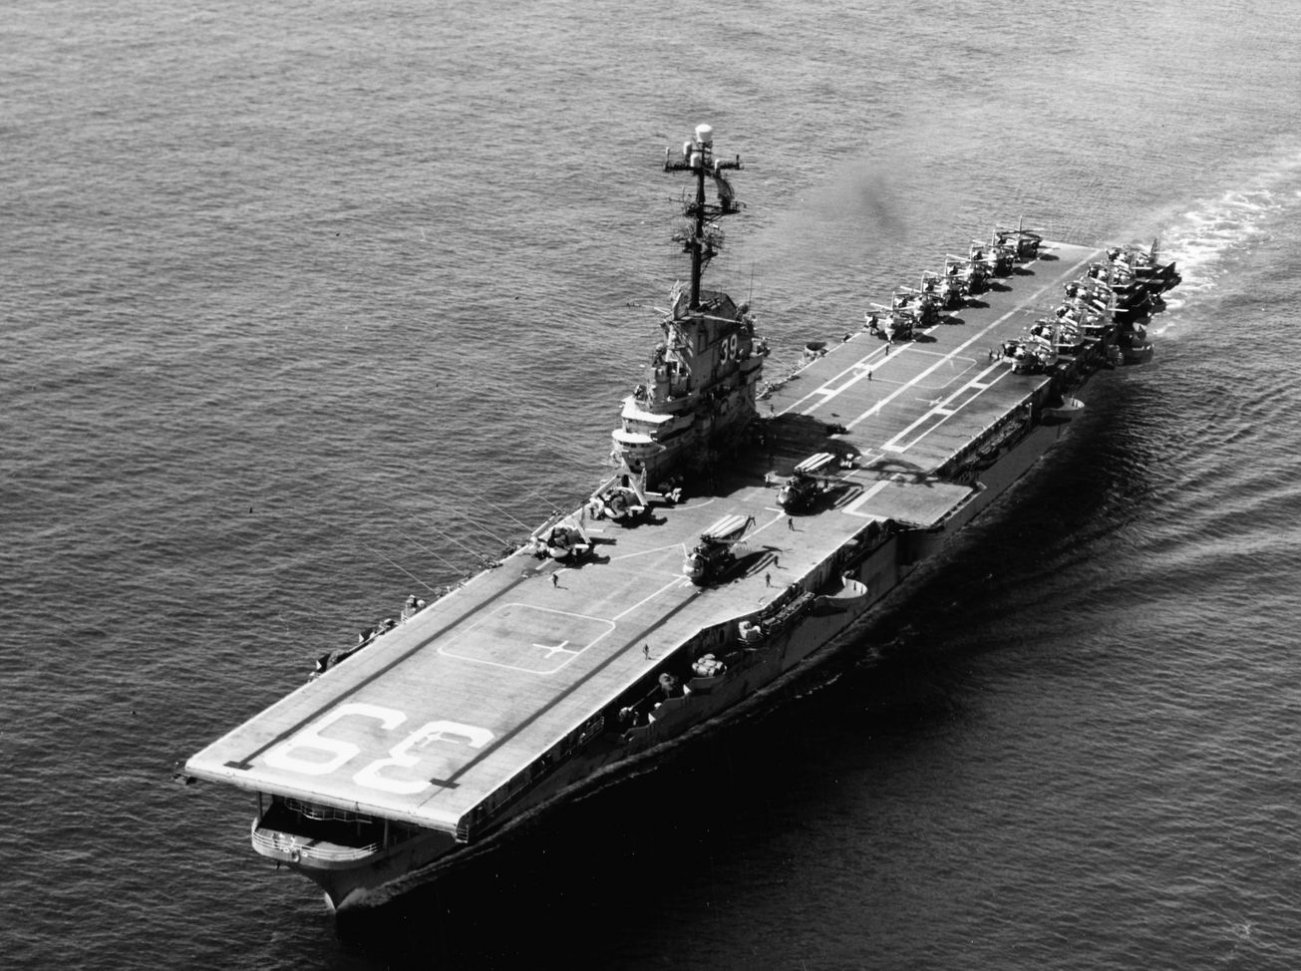 This U.S. Navy Aircraft Carrier Beat Imperial Japan and Russia